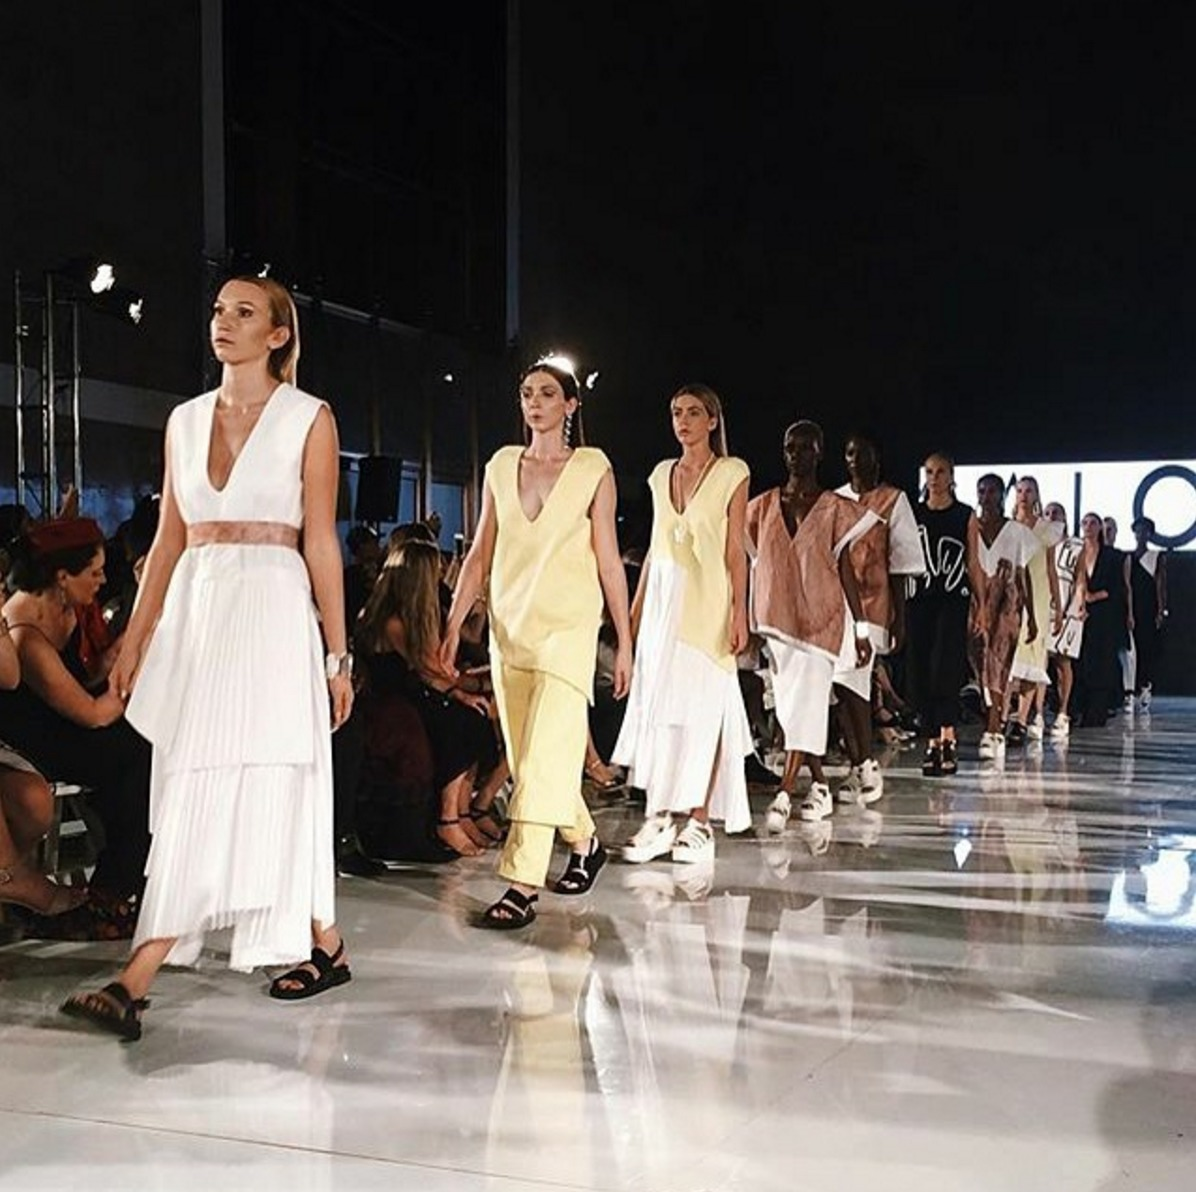 Contemporary beauties hitting the runway. Key Stylist Ozzie Morales for Salo Shayo.